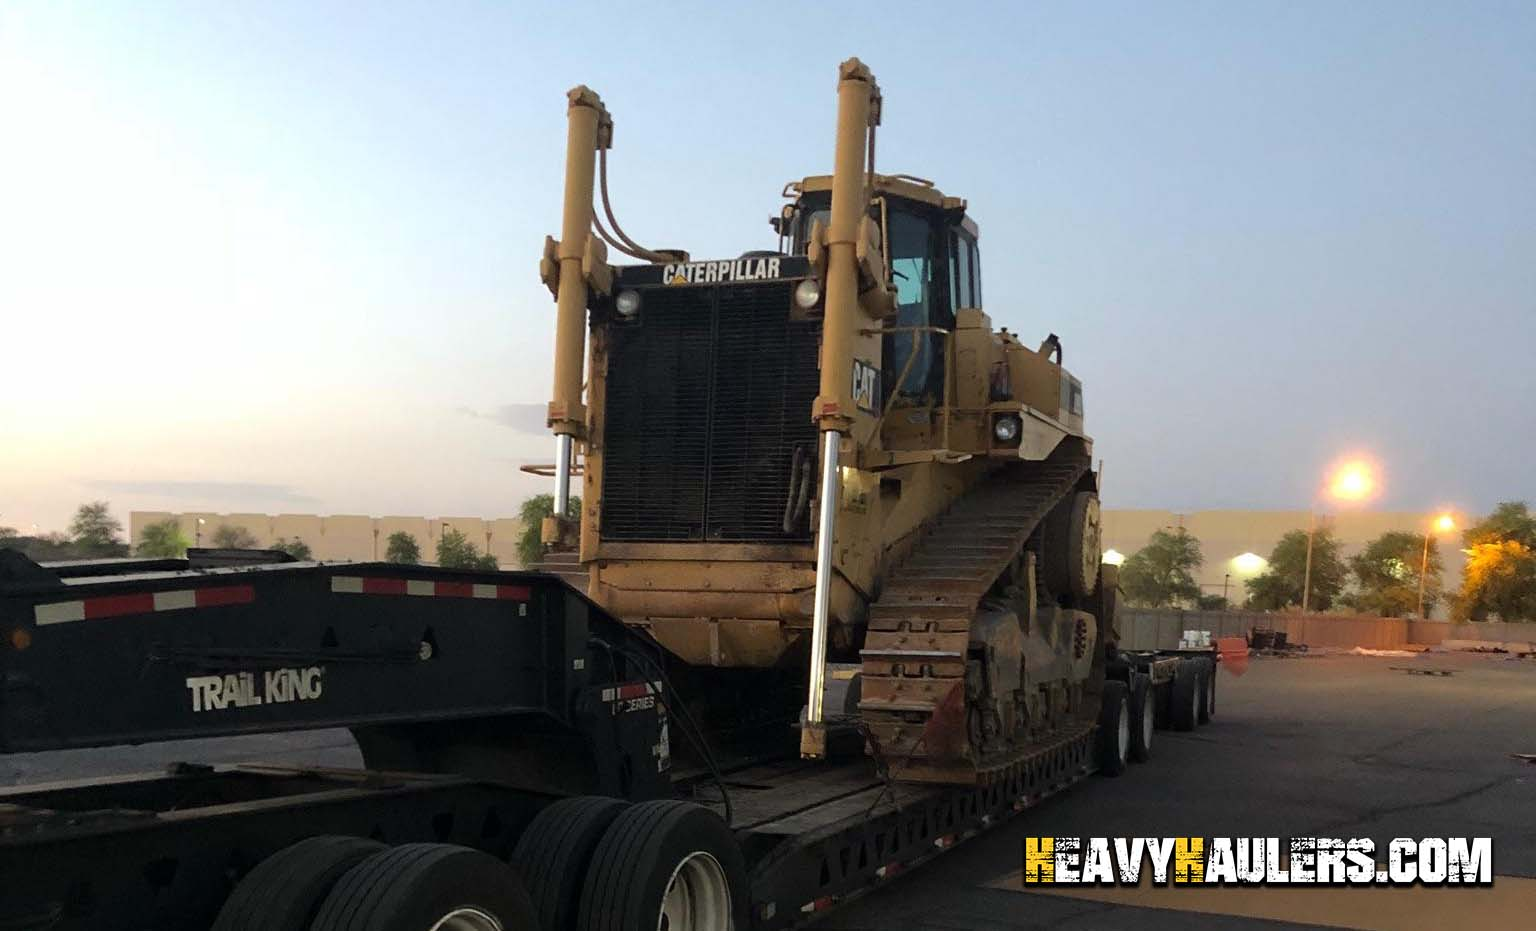 Bulldozer Transport Services | Heavy Haulers | (800) 908-6206